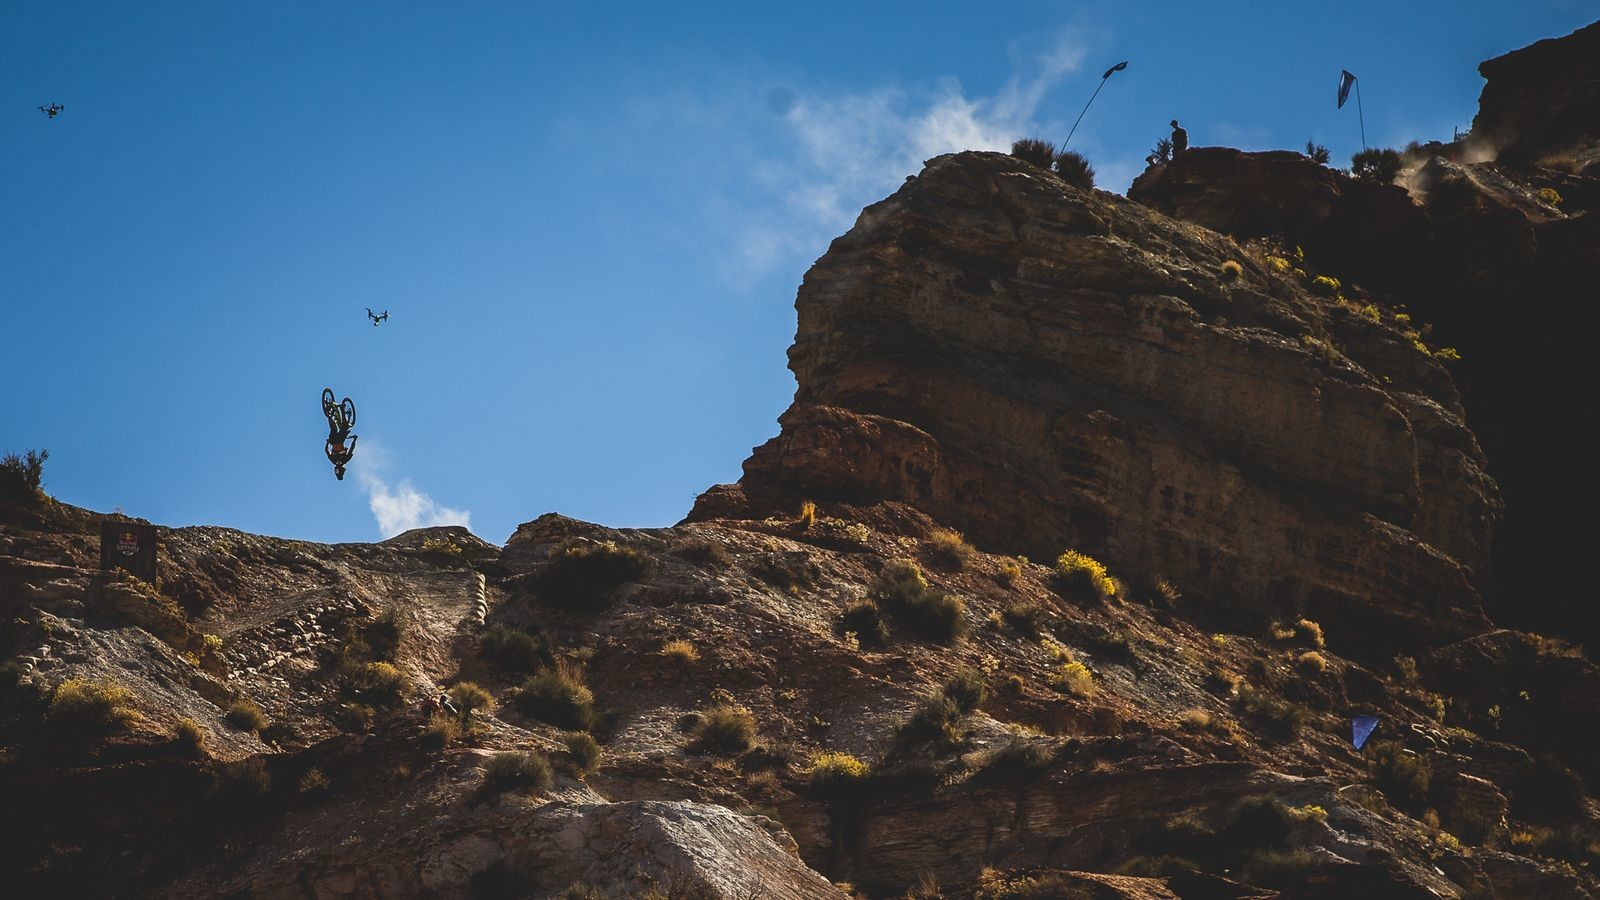 Antoine Bizet Withdraws From 2019 Red Bull Rampage